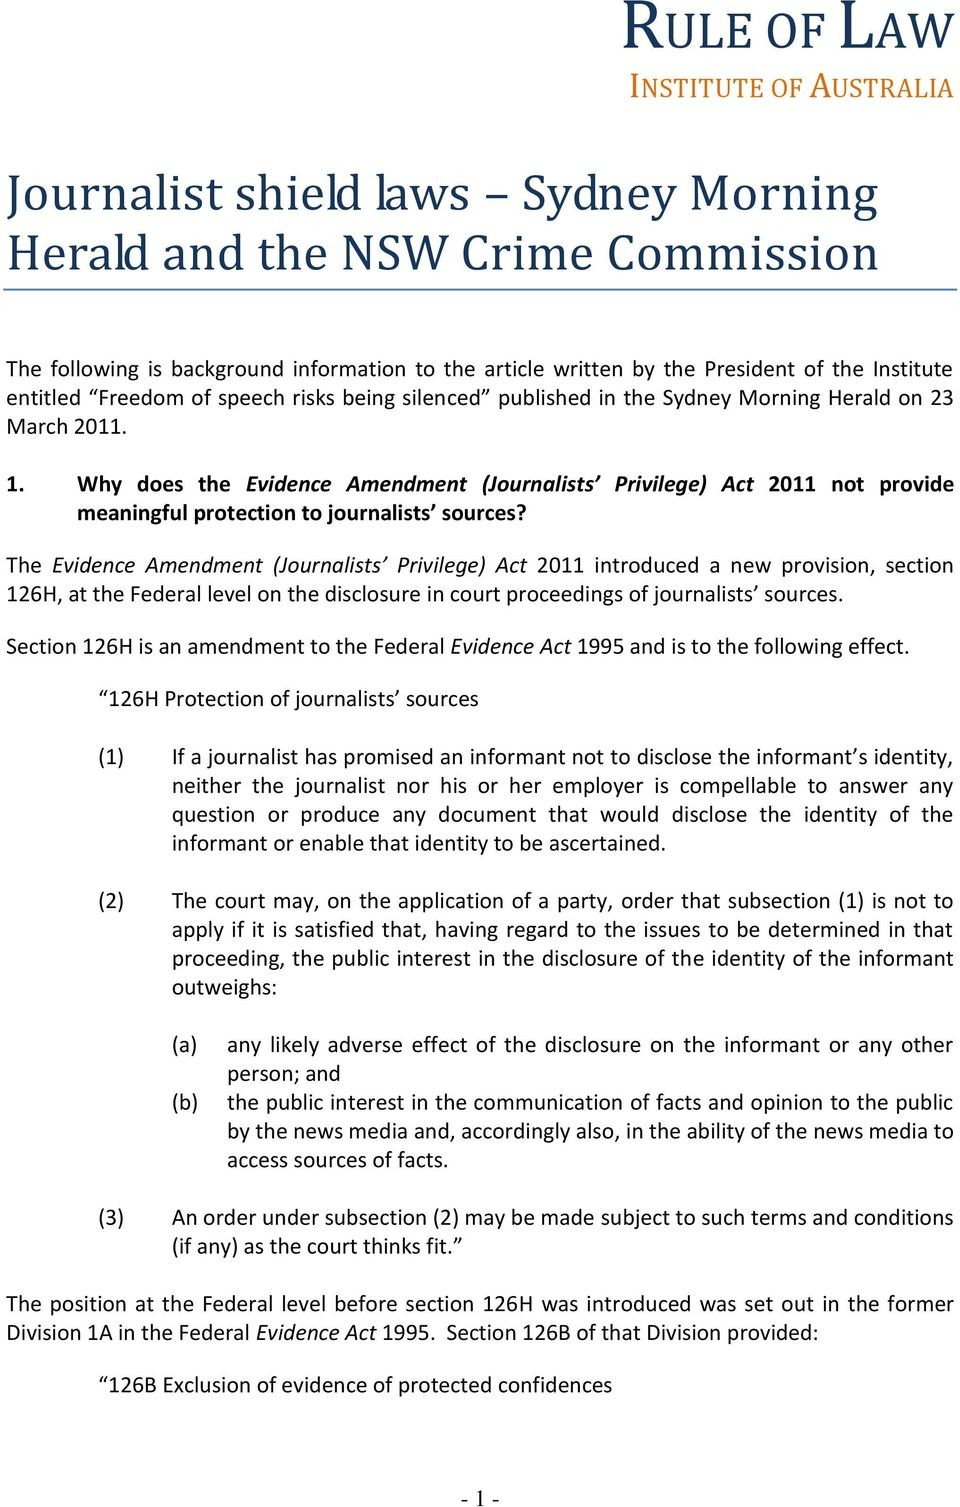 Why does the Evidence Amendment (Journalists Privilege) Act 2011 not provide meaningful protection to journalists sources?